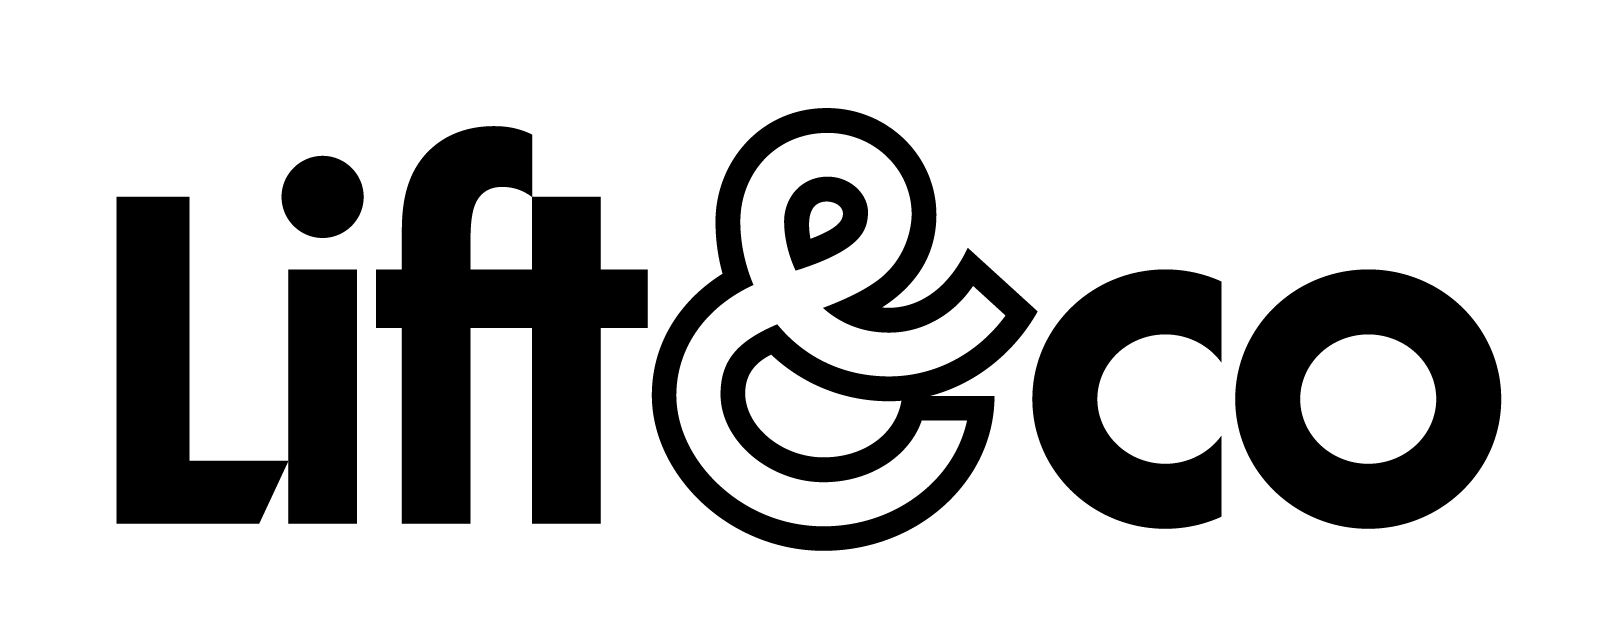 Lift & Co. and MCI USA Announce Strategic Partnership to Grow Lift & Co